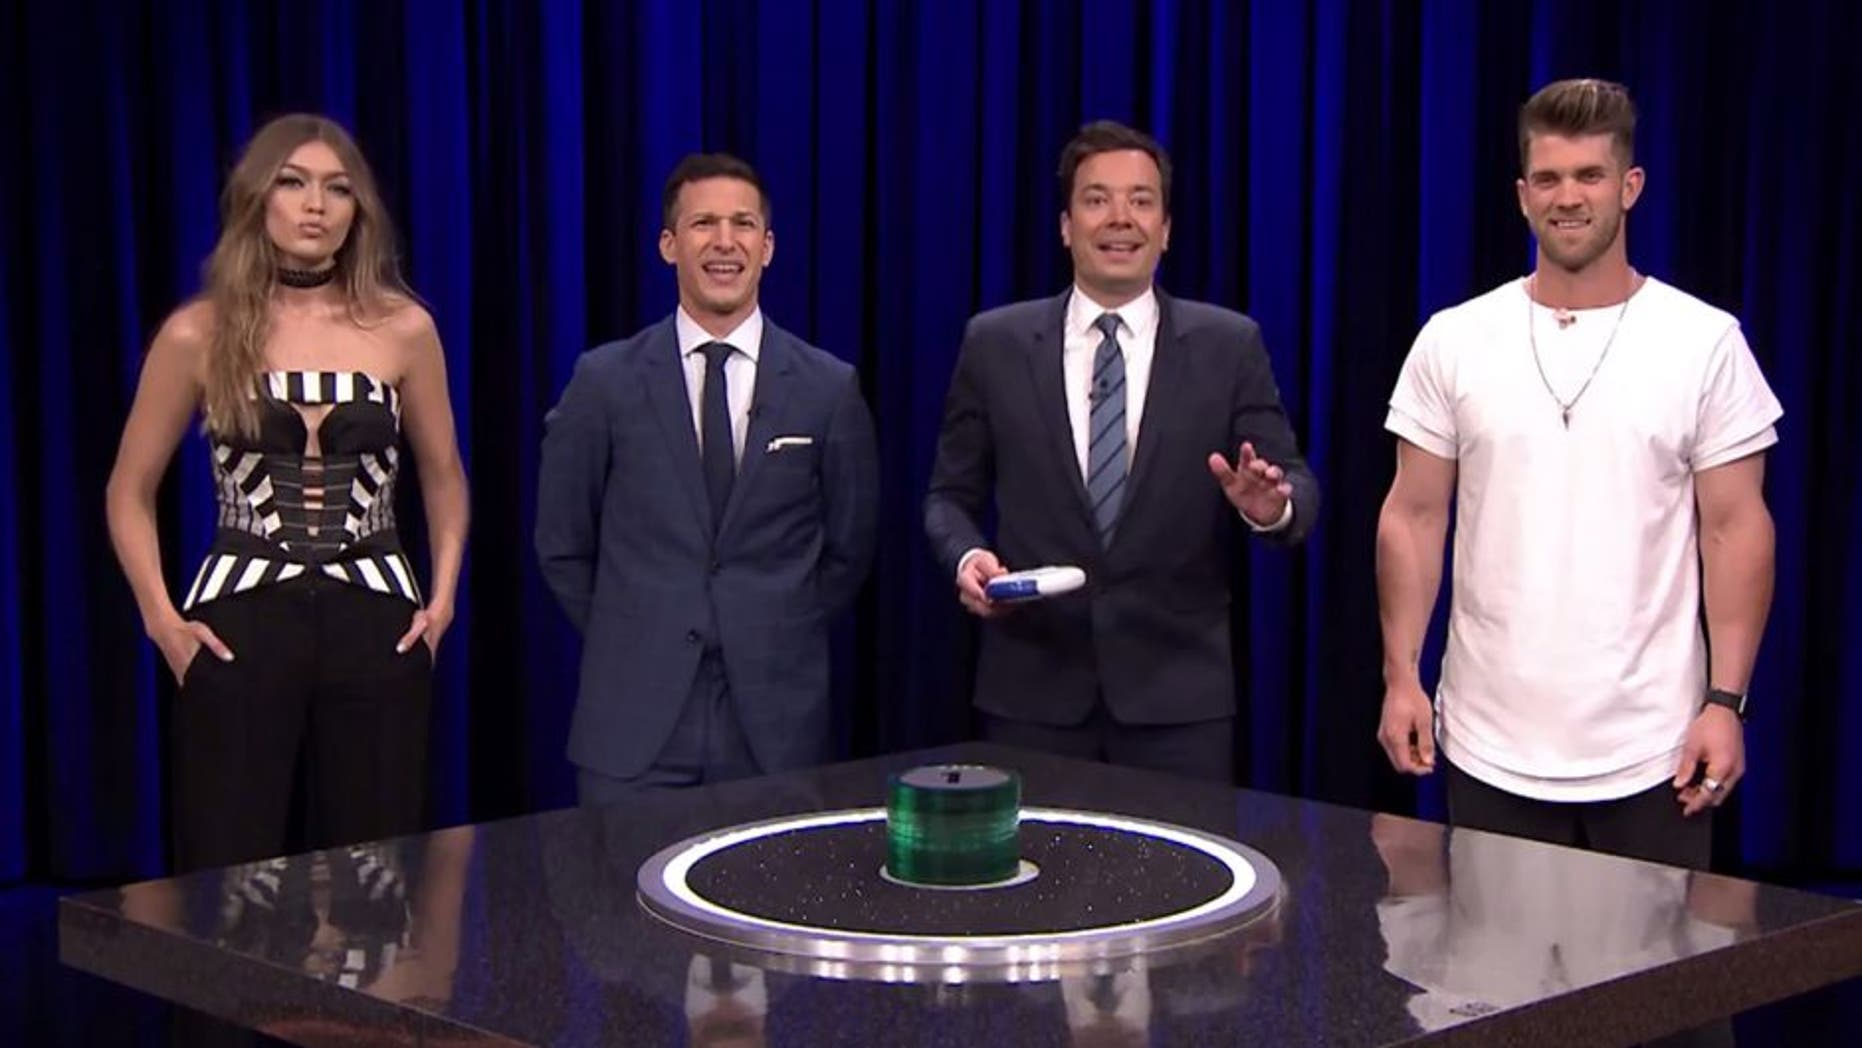 """Bryce Harper got very competitive in a game of Catchphrase on """"The Tonight Show."""""""